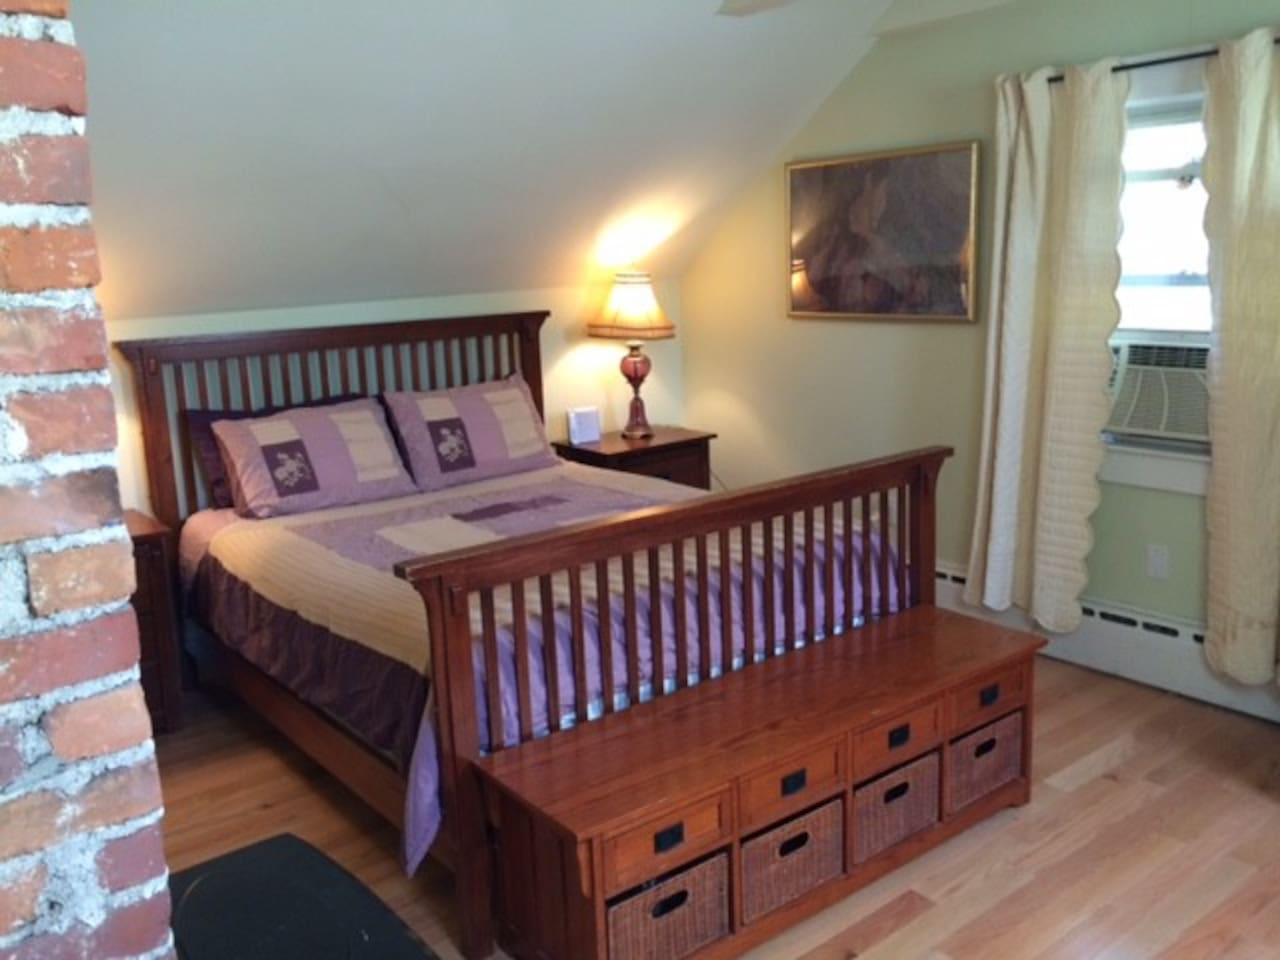 Queen size bed and a window air conditioner